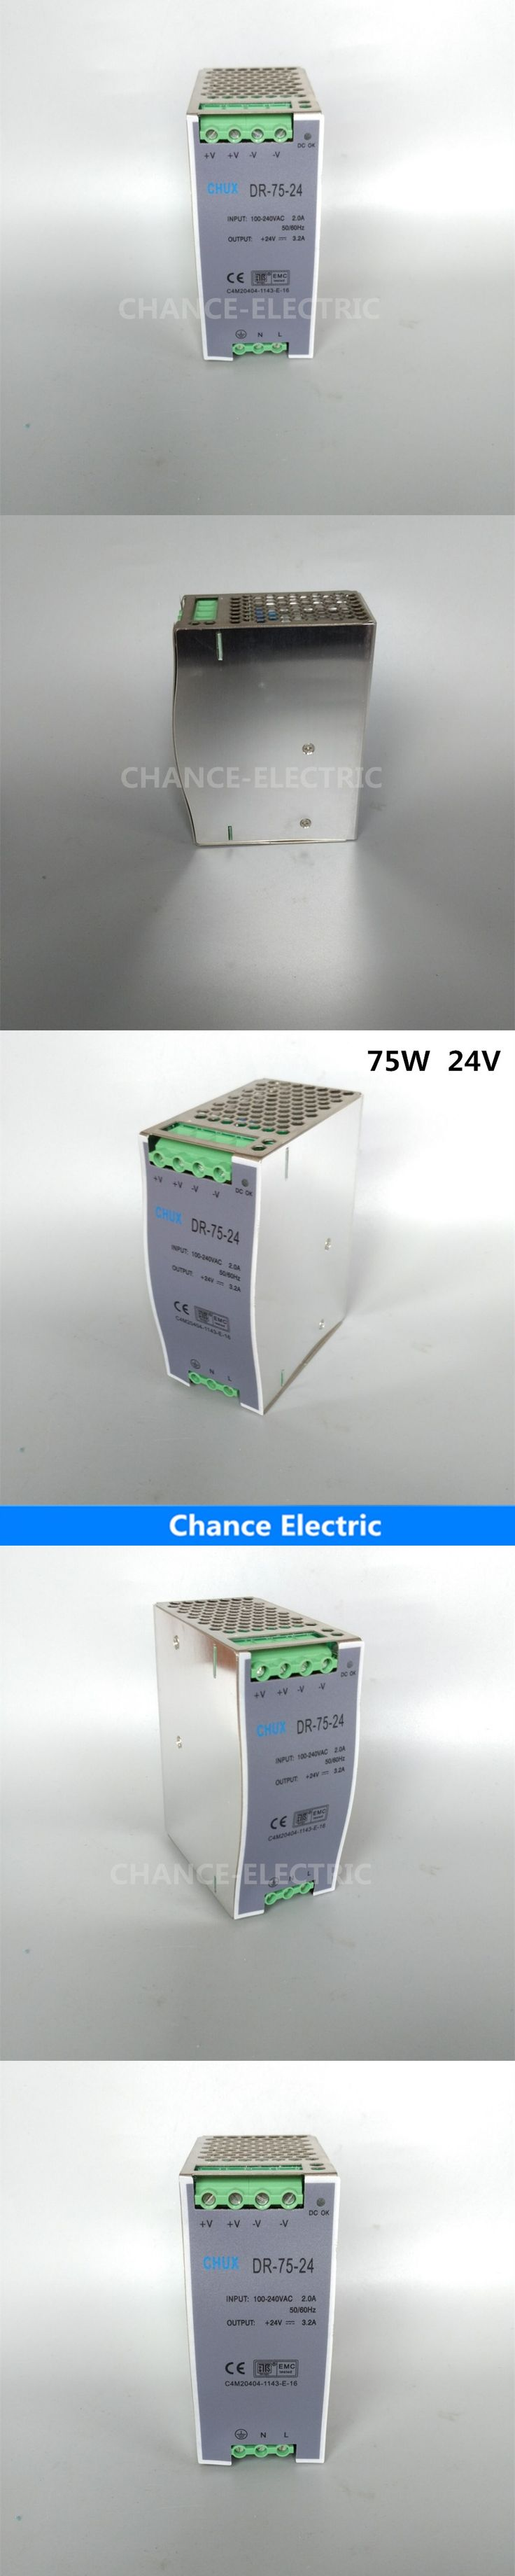 (DR-75-24) 75W 24V switch power source (85-264VAC input) 75W 24vdc din rail power supply free shipping